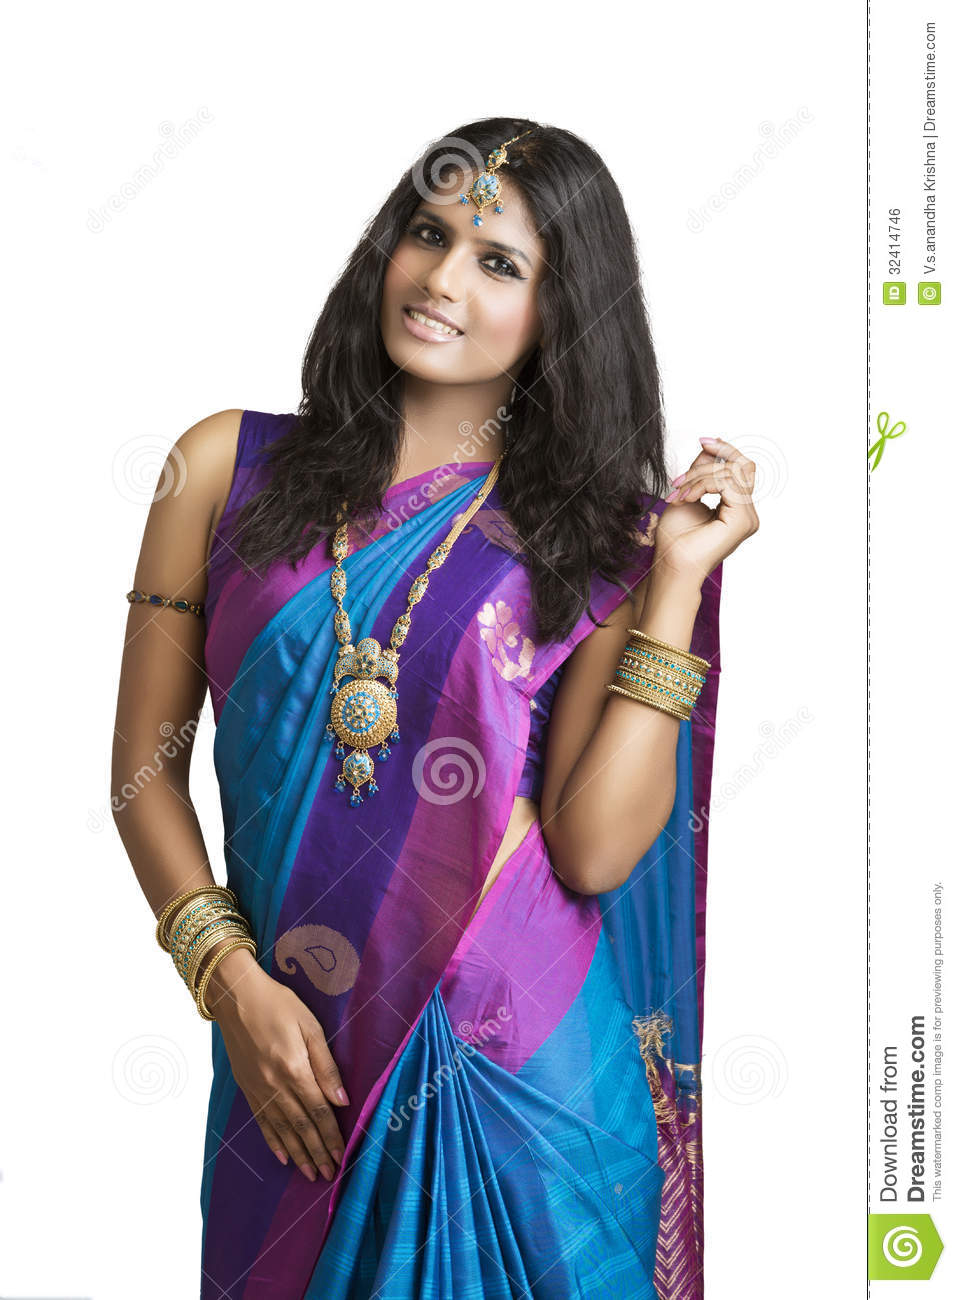 belle plaine hindu single men The results showed members would be including twenty-four mps of hindu  belle 12 mahebourg and plaine  every single culture in its own right mauritius.